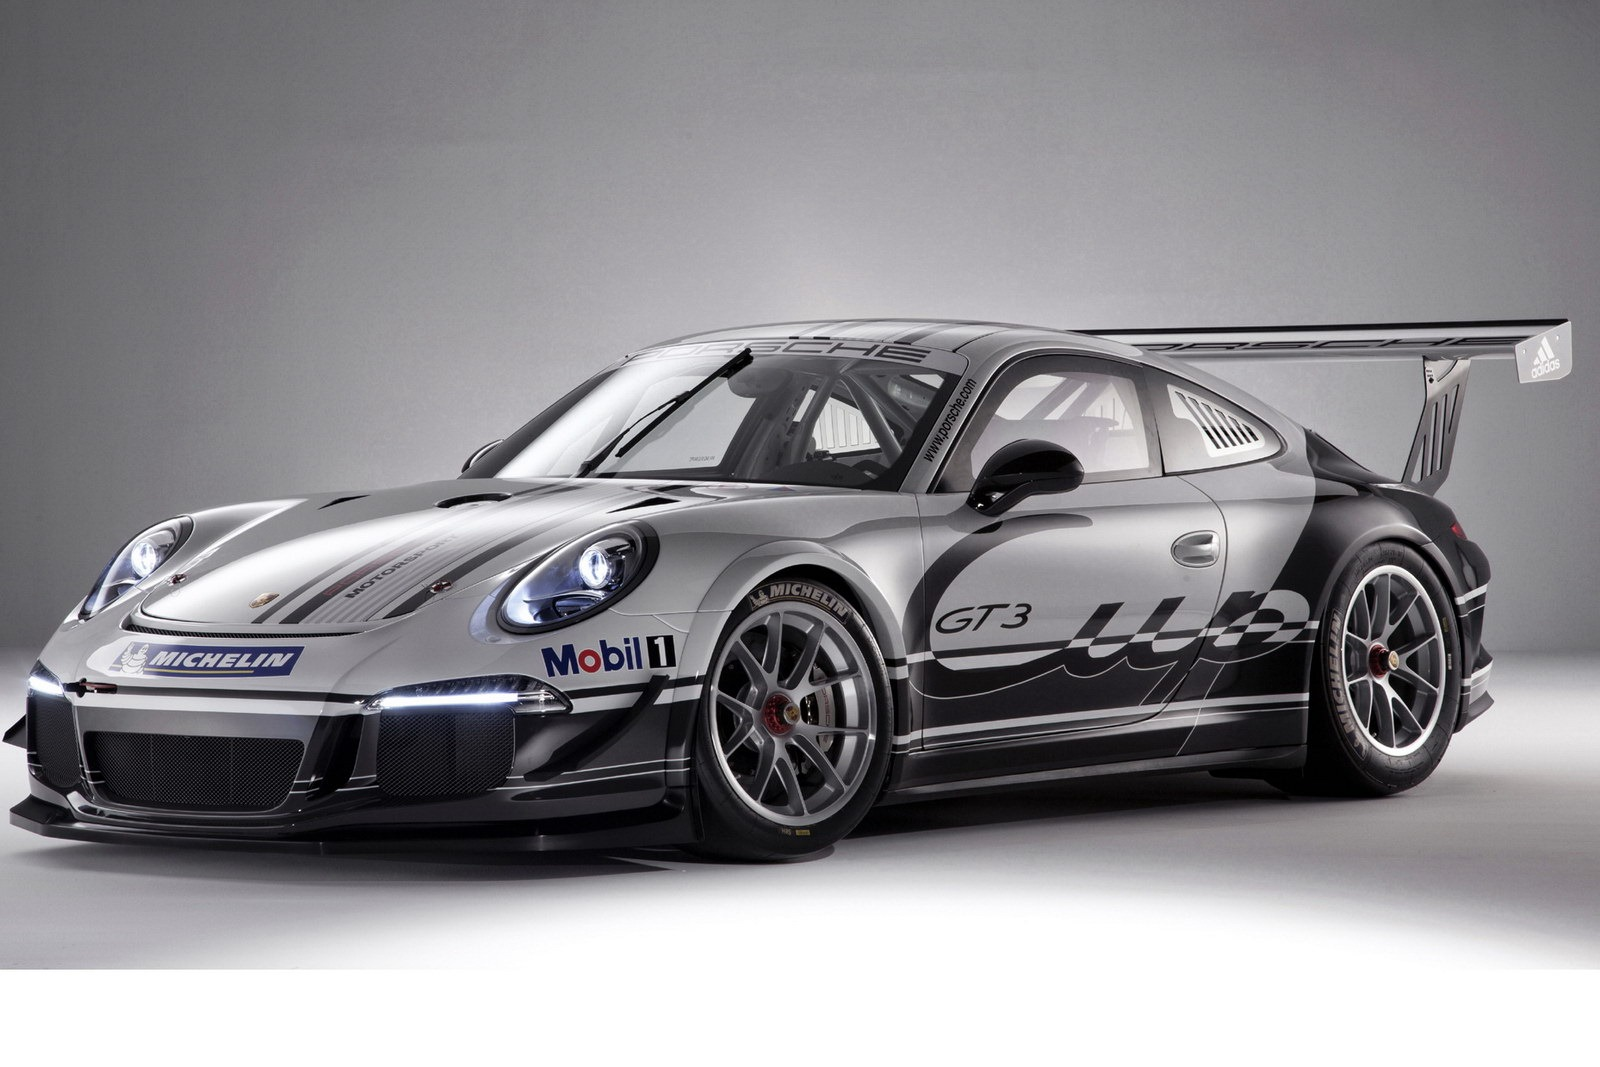 porsche 911 991 gt3 cup car gallery sports cars autocar india. Black Bedroom Furniture Sets. Home Design Ideas